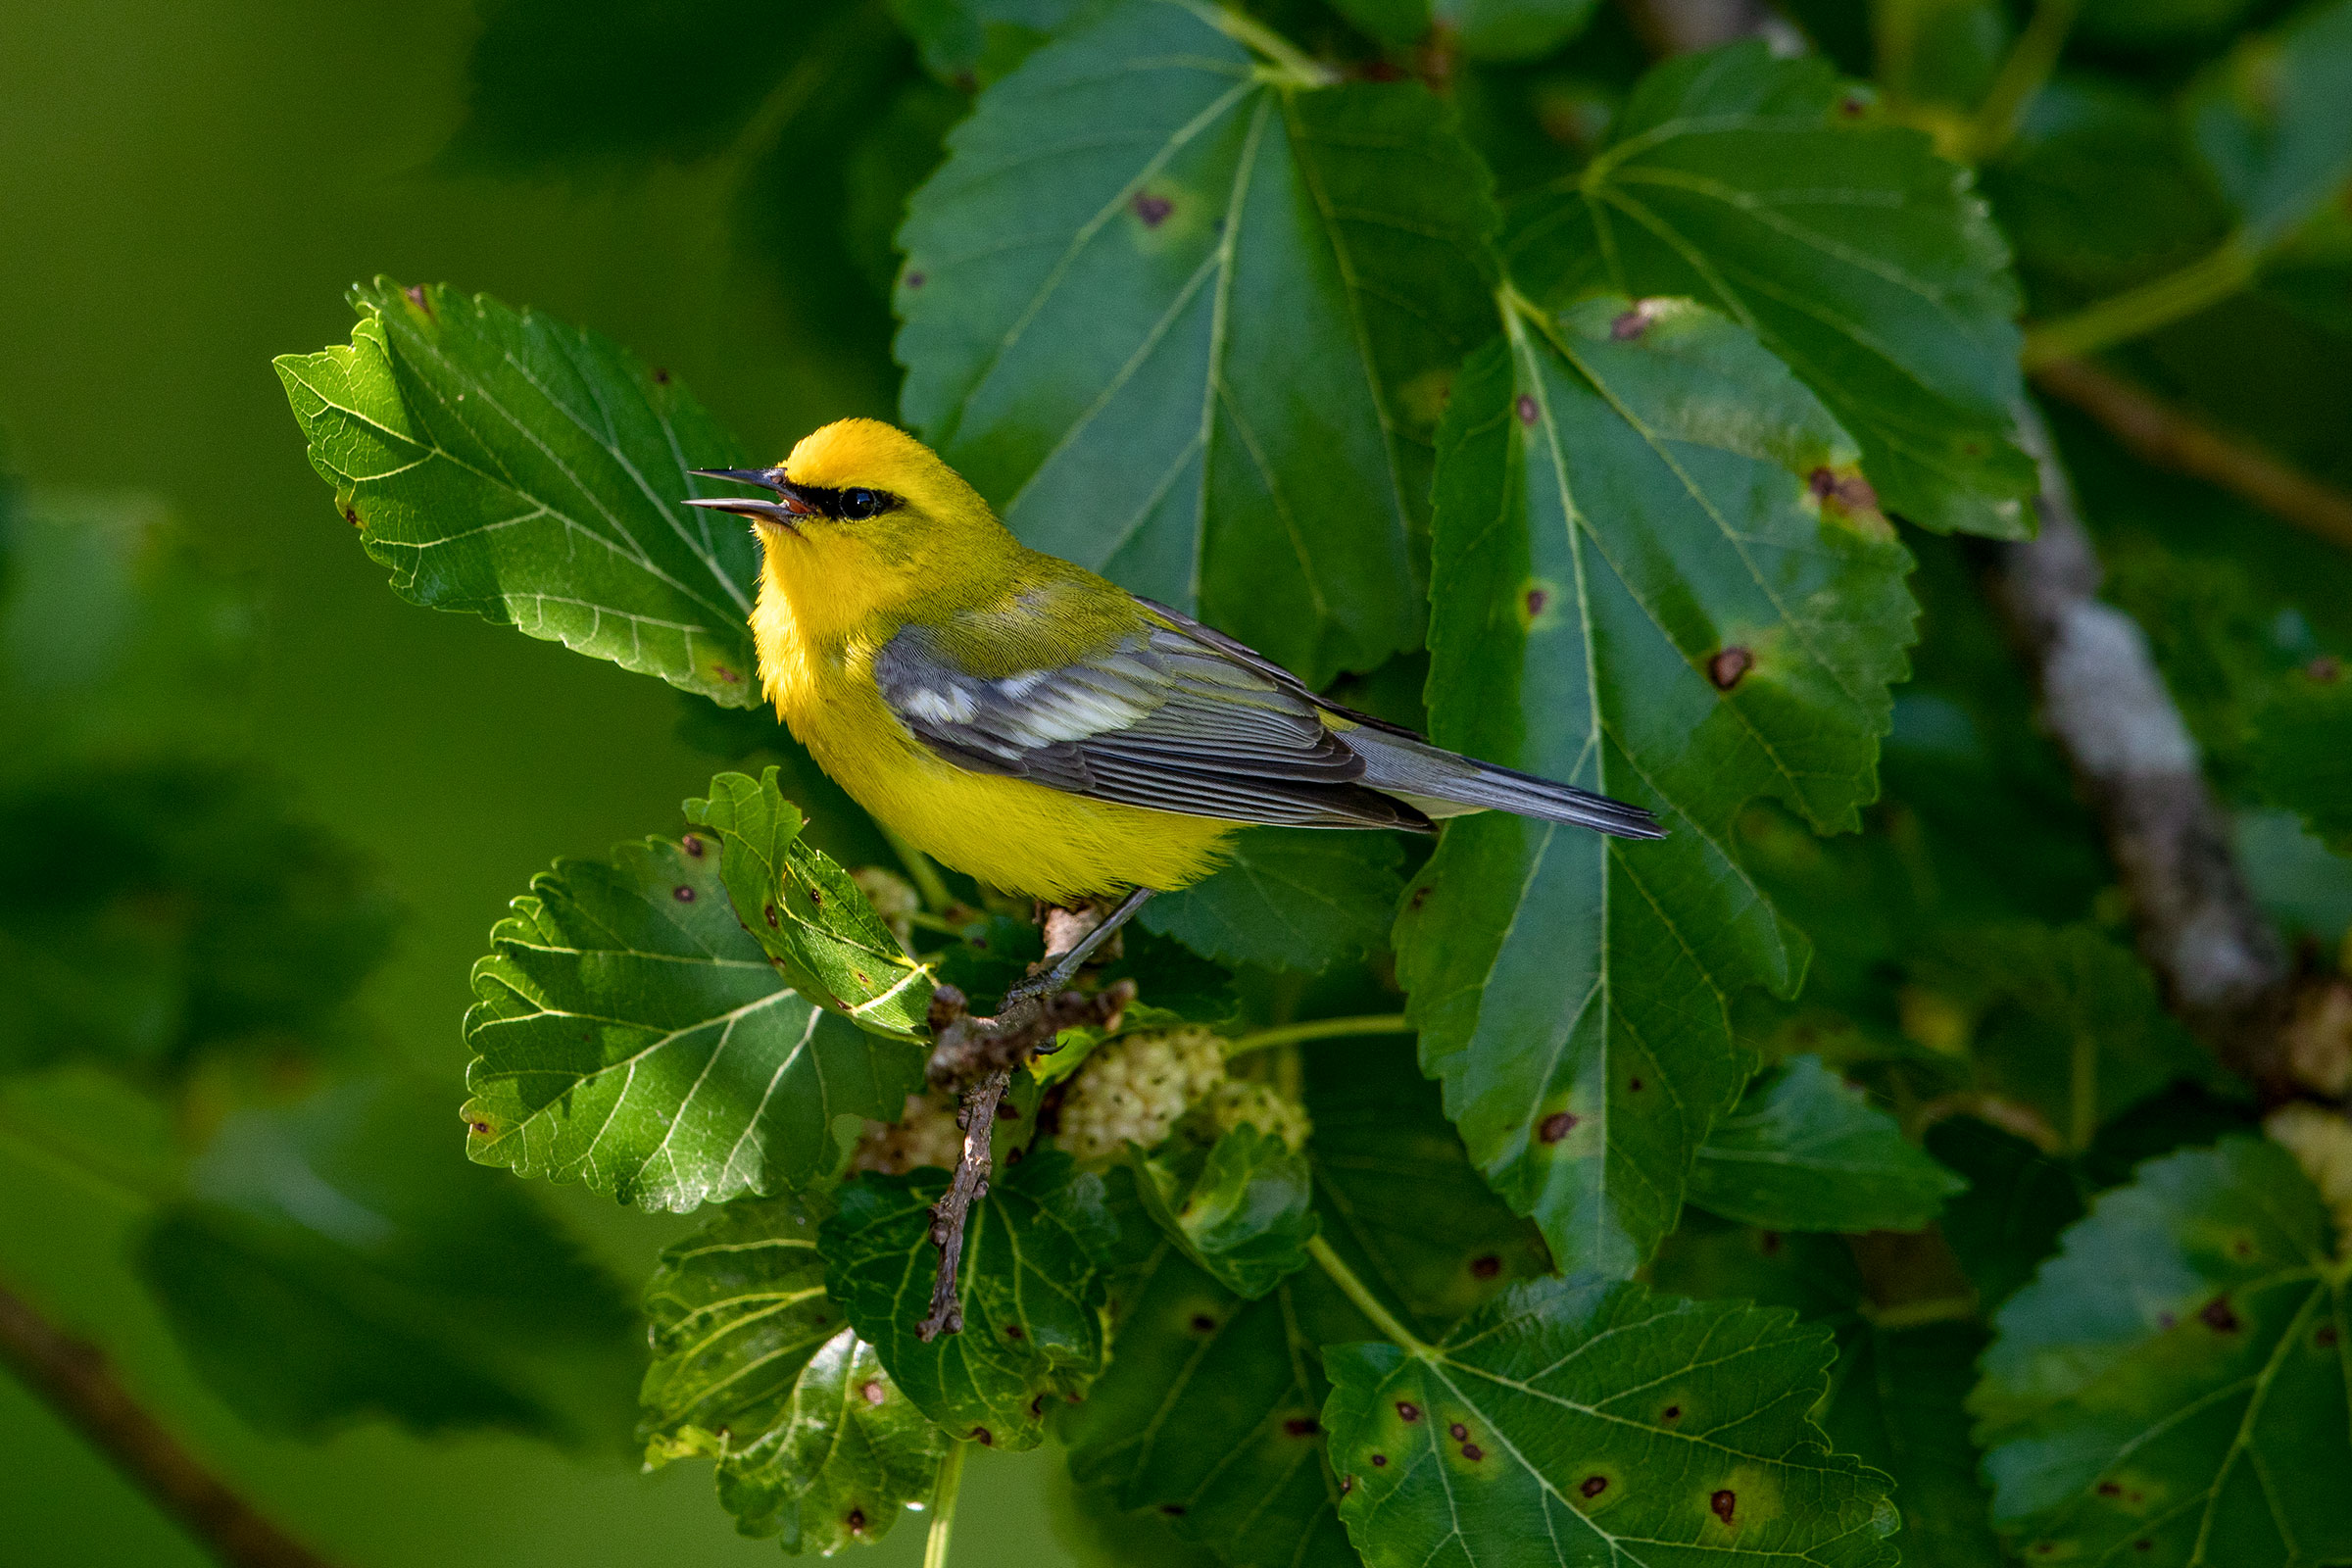 Blue-winged Warbler is just one of the 35 warbler species that can be found in New River Gorge National Park. Gary Robinette/Audubon Photography Awards